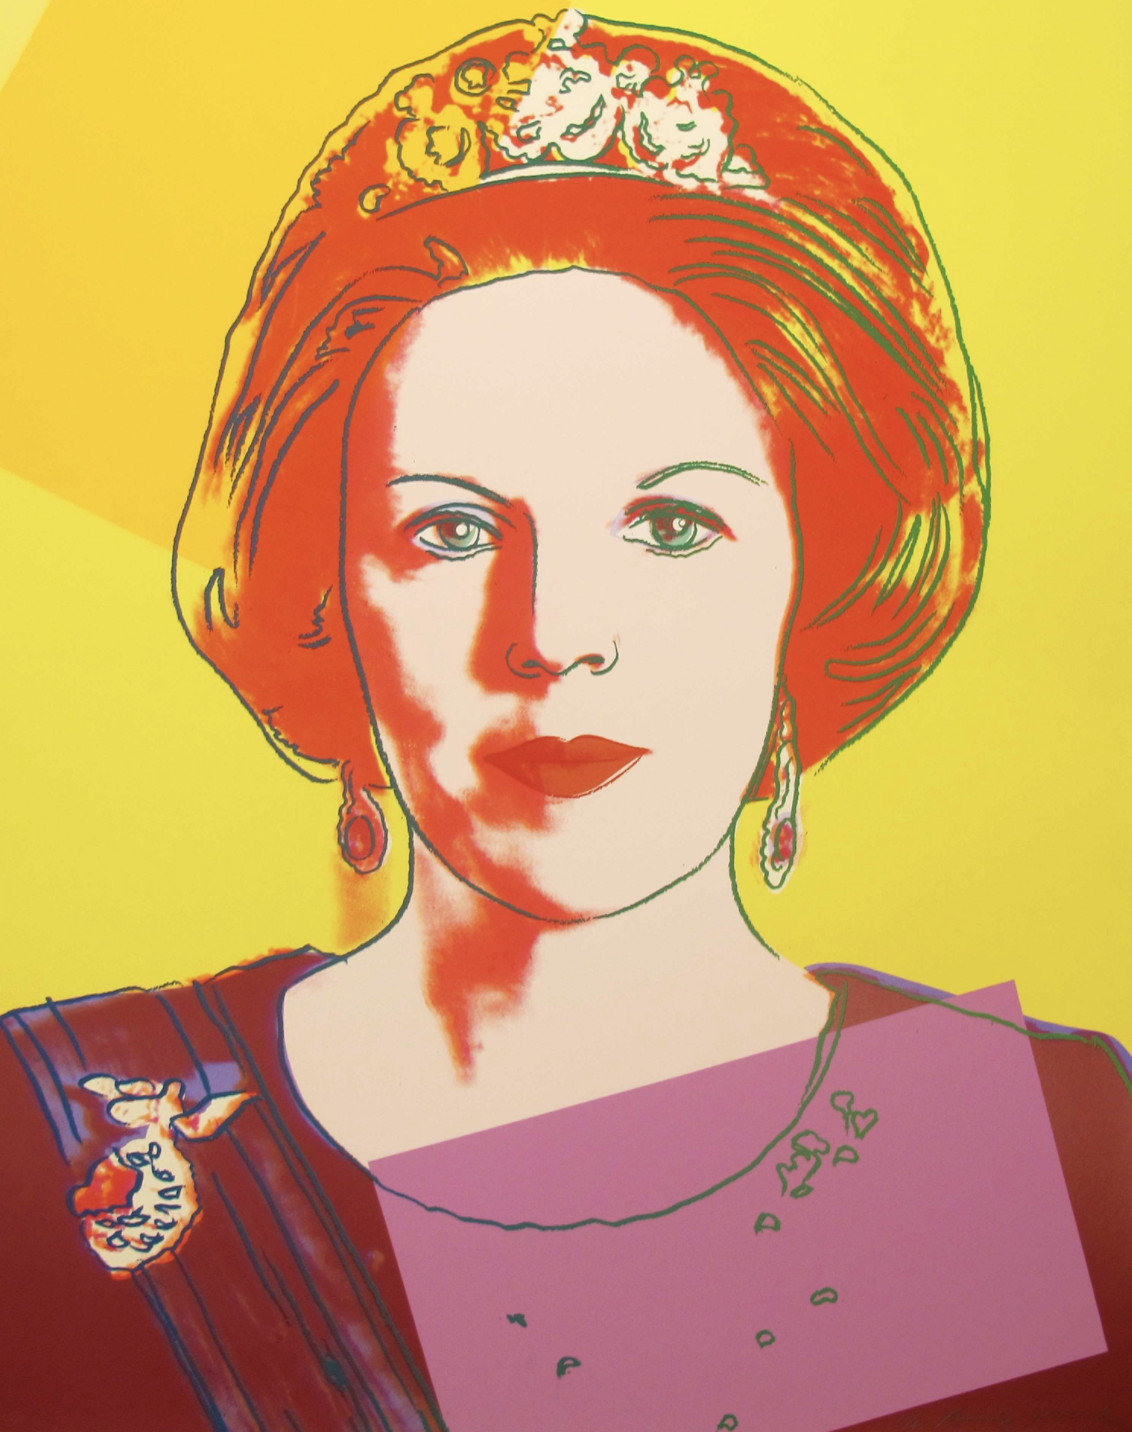 Queen Beatrix Of The Netherlands [II.341] by Andy Warhol